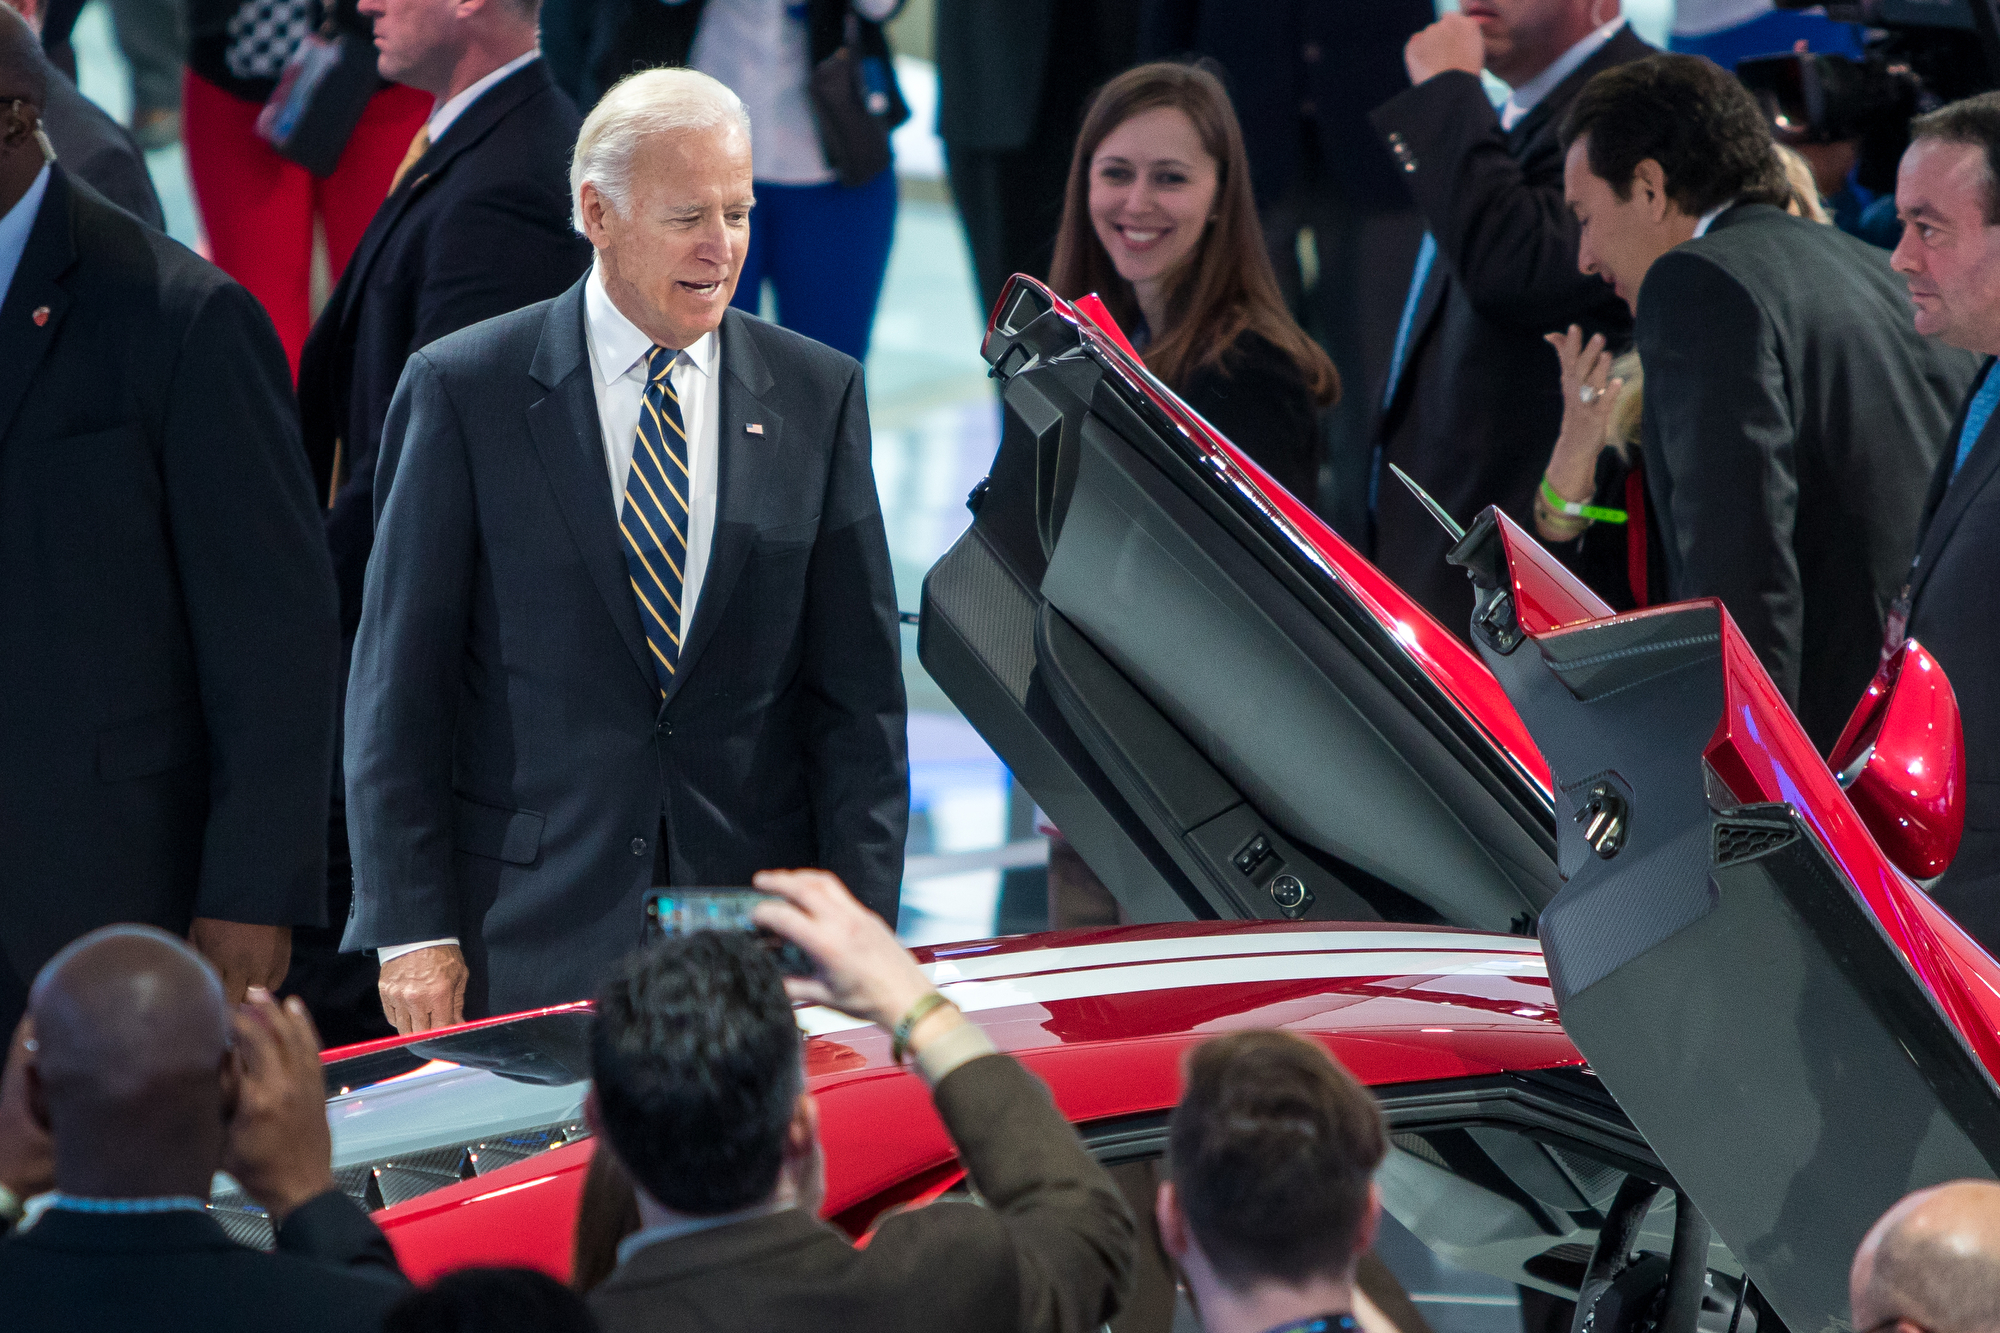 Vice President Joe Biden looks at the #68 Ford GT Le Mens winner while at the North American International Auto Show at the Cobo Center on Tuesday, January 10, 2017. Biden toured the Ford, Chrysler and GM booths at the auto show and met with executives from each company. Matt Weigand | The Ann Arbor News